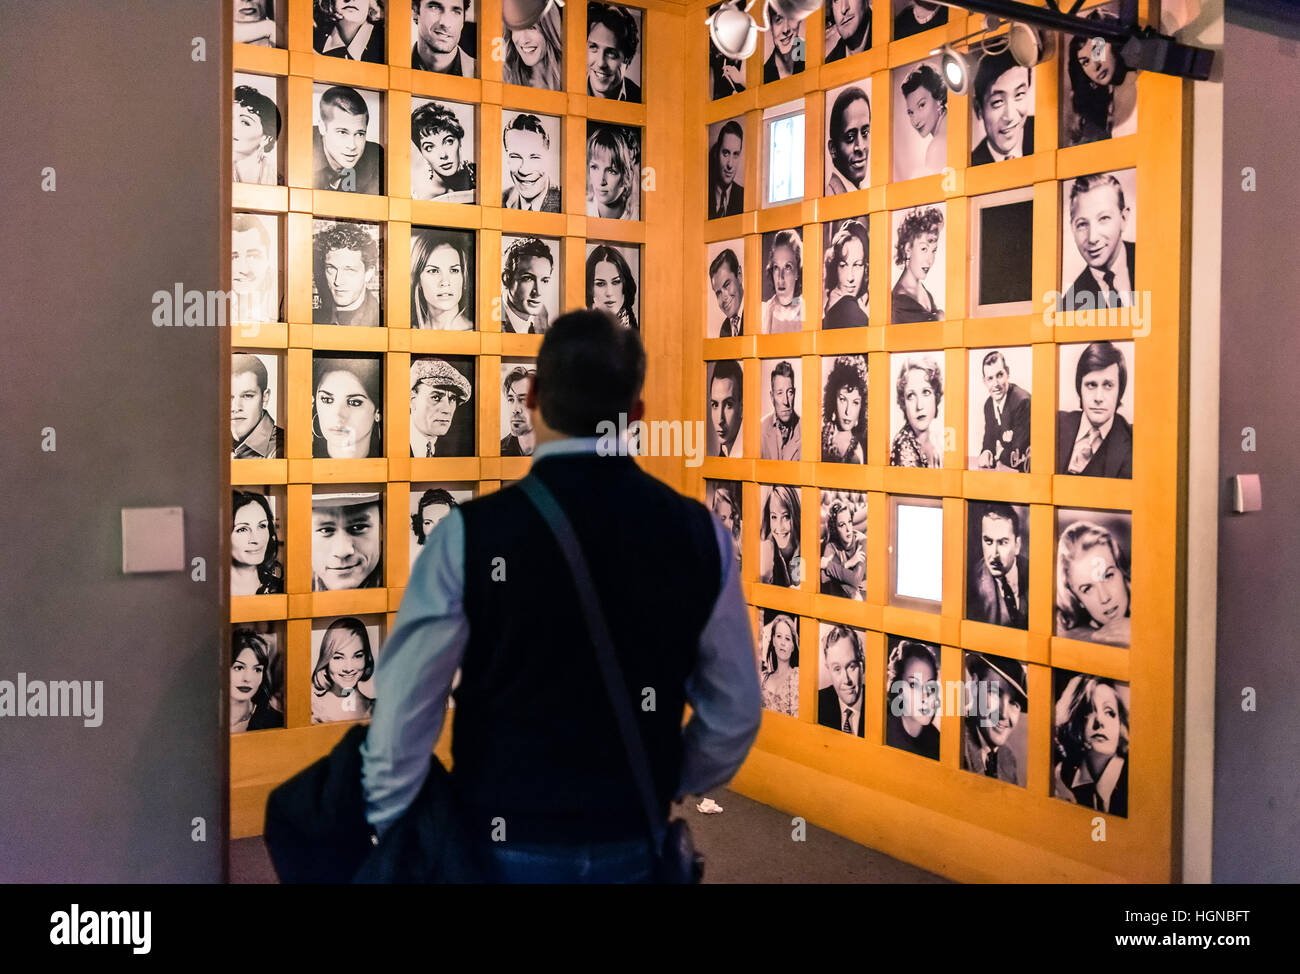 tourist visit National Museum of Cinema in Turin, Italy. - Stock Image